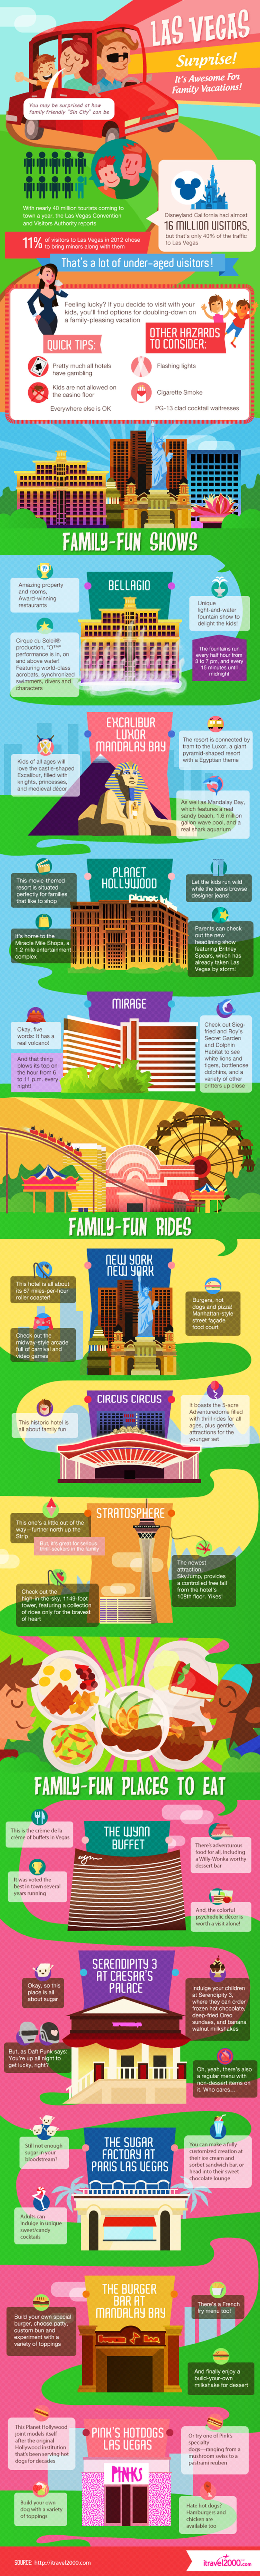 Family Vacation Guide to Las Vegas - Travel infographic